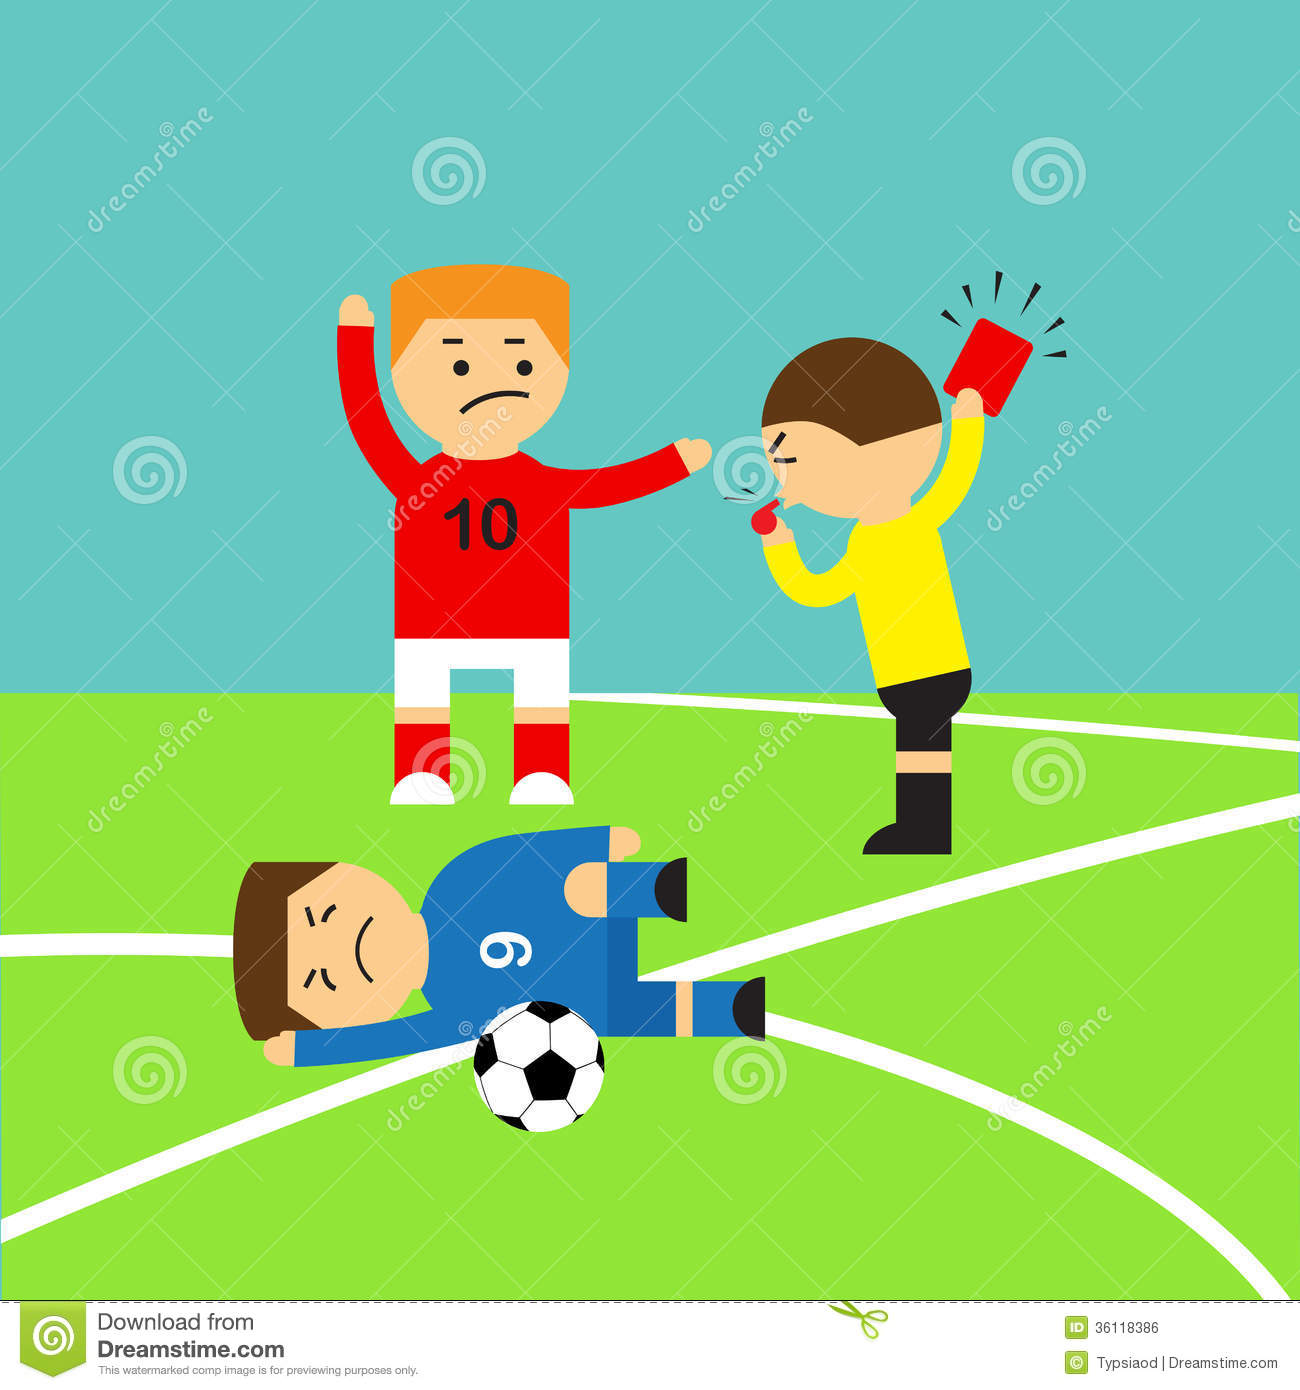 Different Data Science Roles Industry additionally Source Analysis 23098446 moreover Royalty Free Stock Image Referee Showing Red Card To Soccer Player Who Making Tackle Foul Illustration Design Eps Image36118386 additionally Seoul as well Aztec Inca Maya. on strong cartoon people